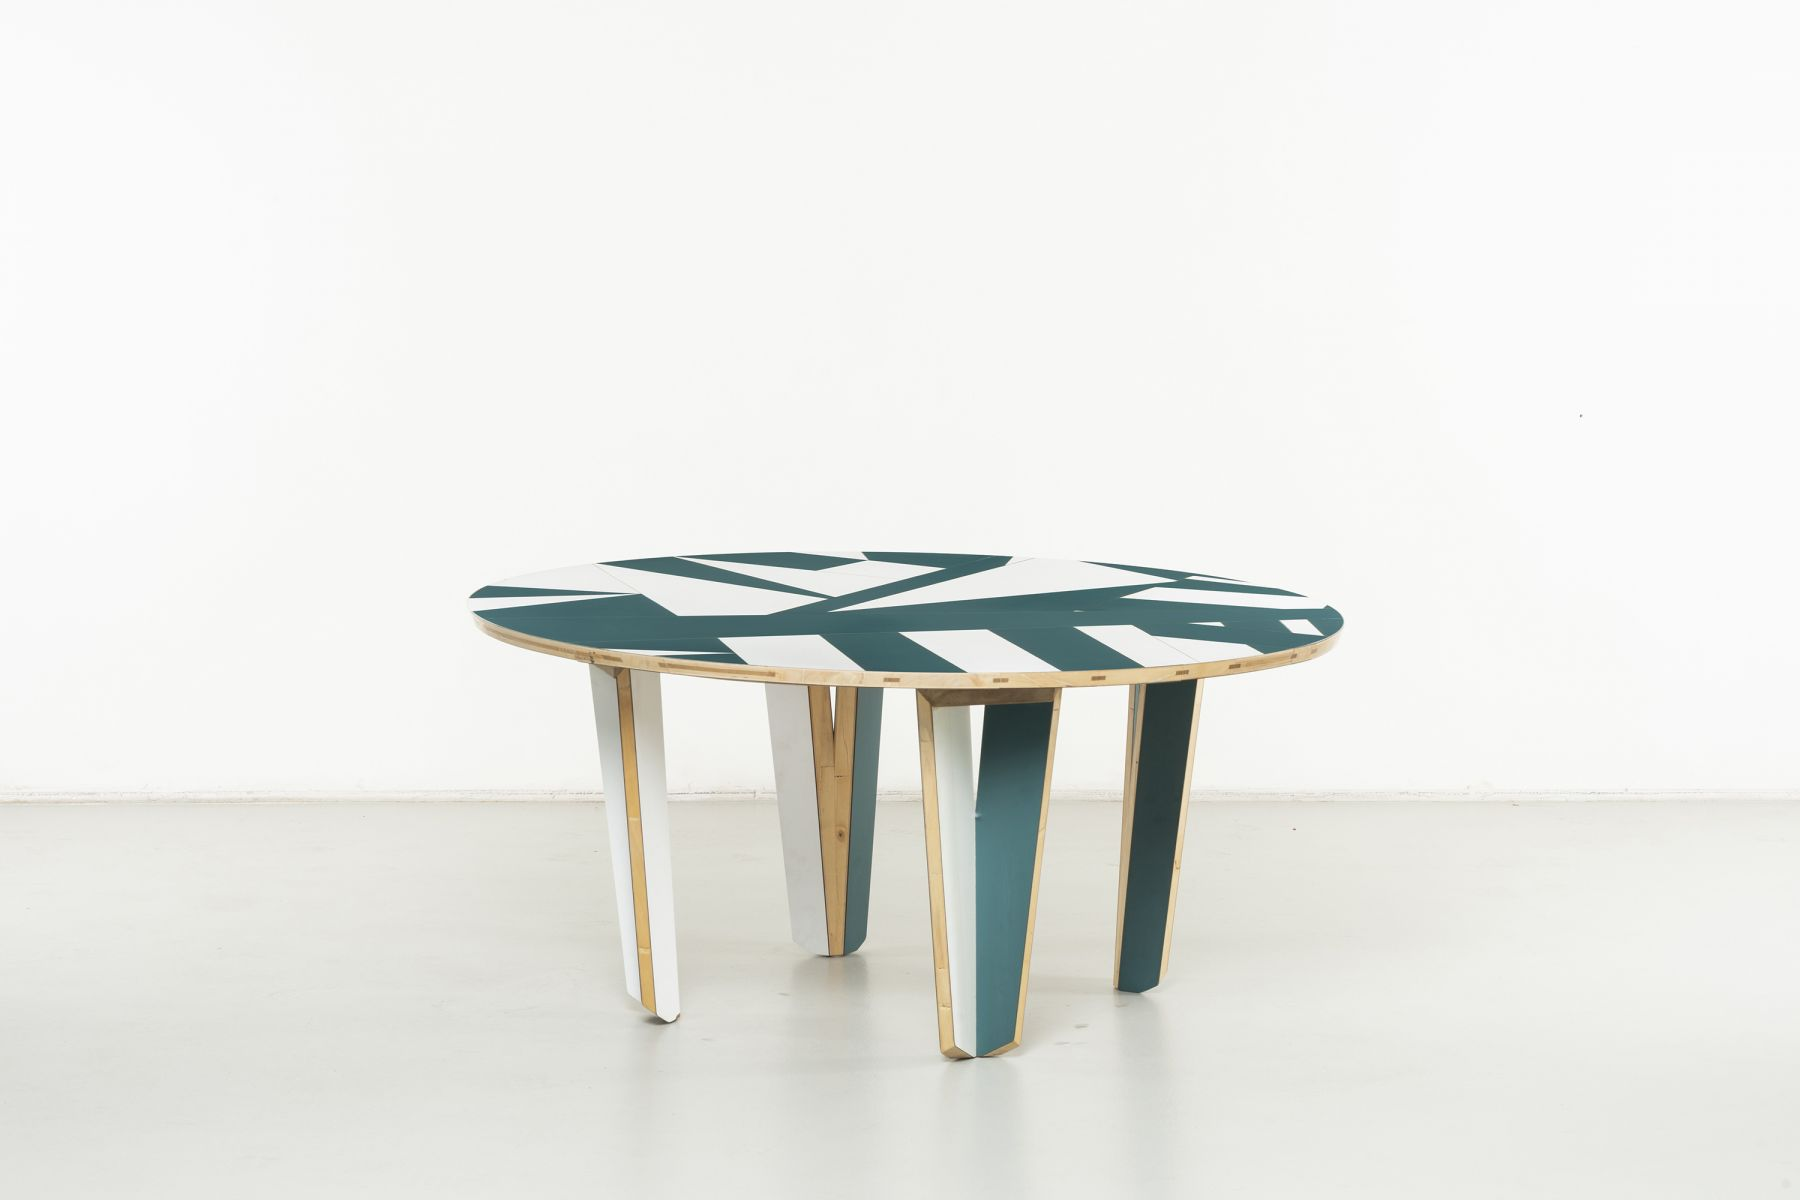 Table Martino Gamper pic-1